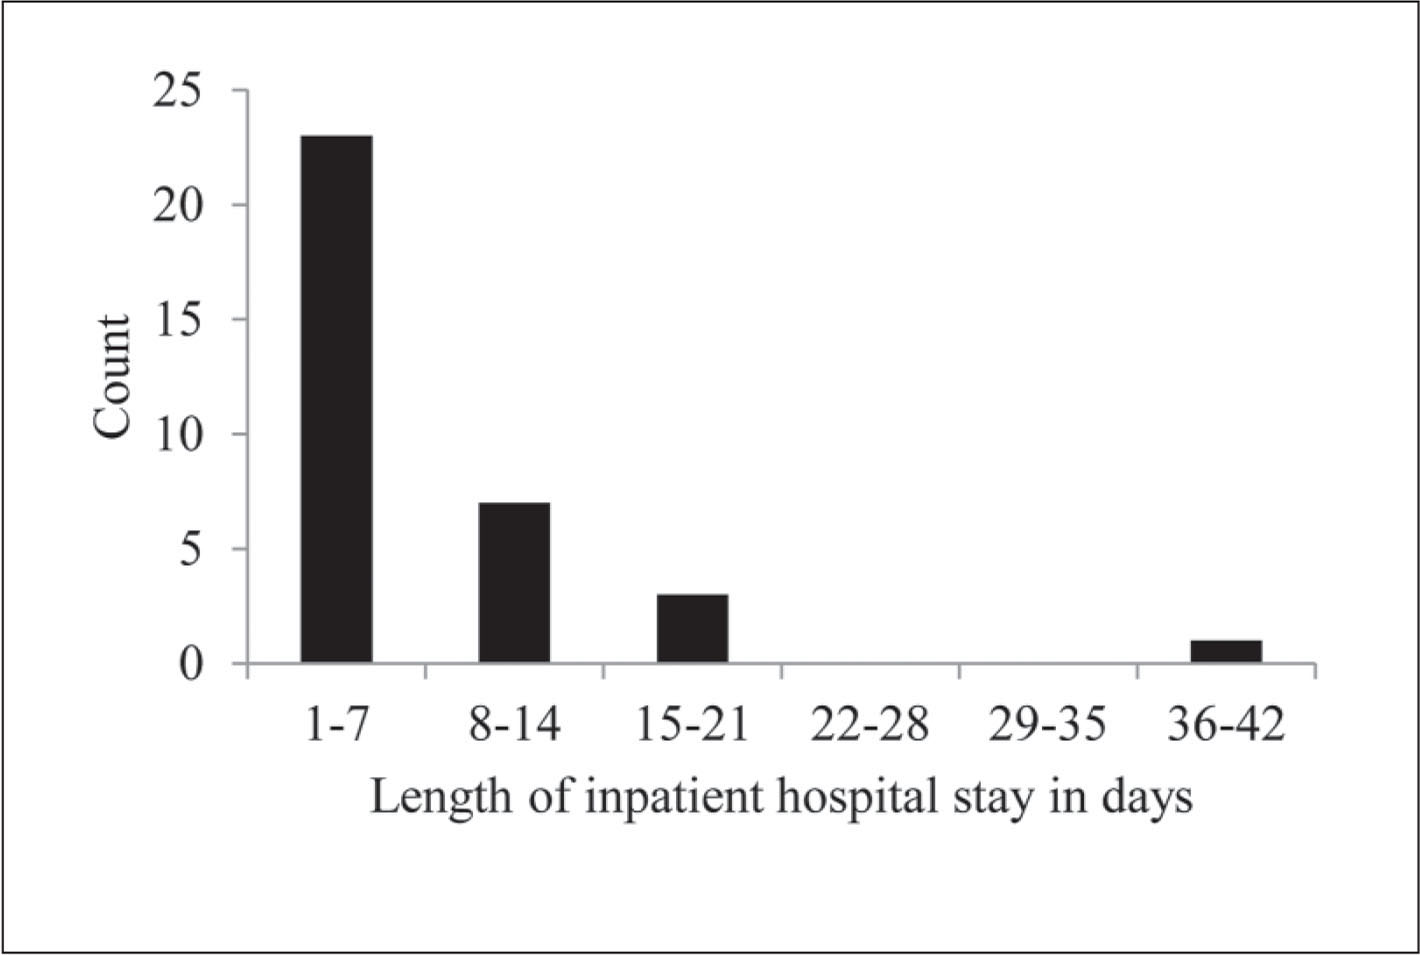 Length of participants' inpatient hospital stays.